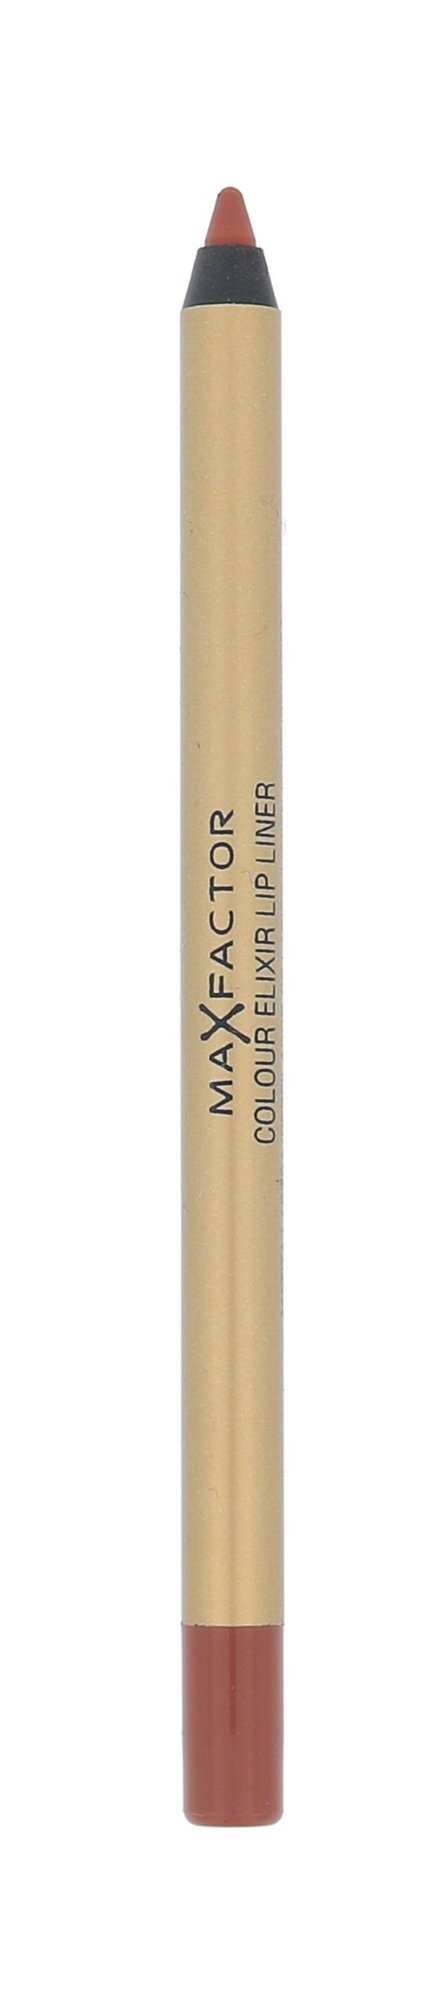 Max Factor Colour Elixir Cosmetic 2ml 14 Brown n Nude